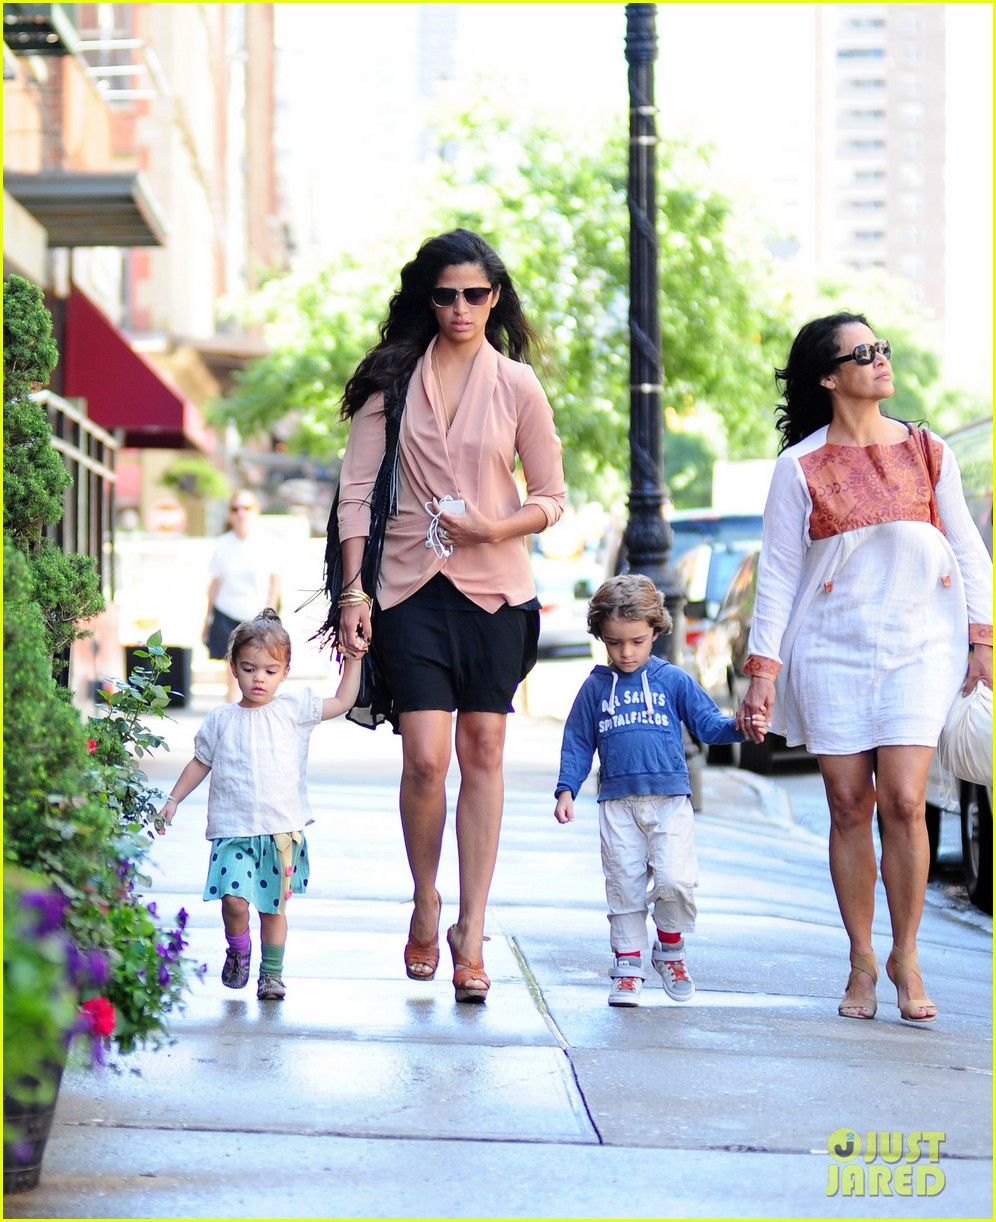 matthew mcconaughey camila alves out and about 06